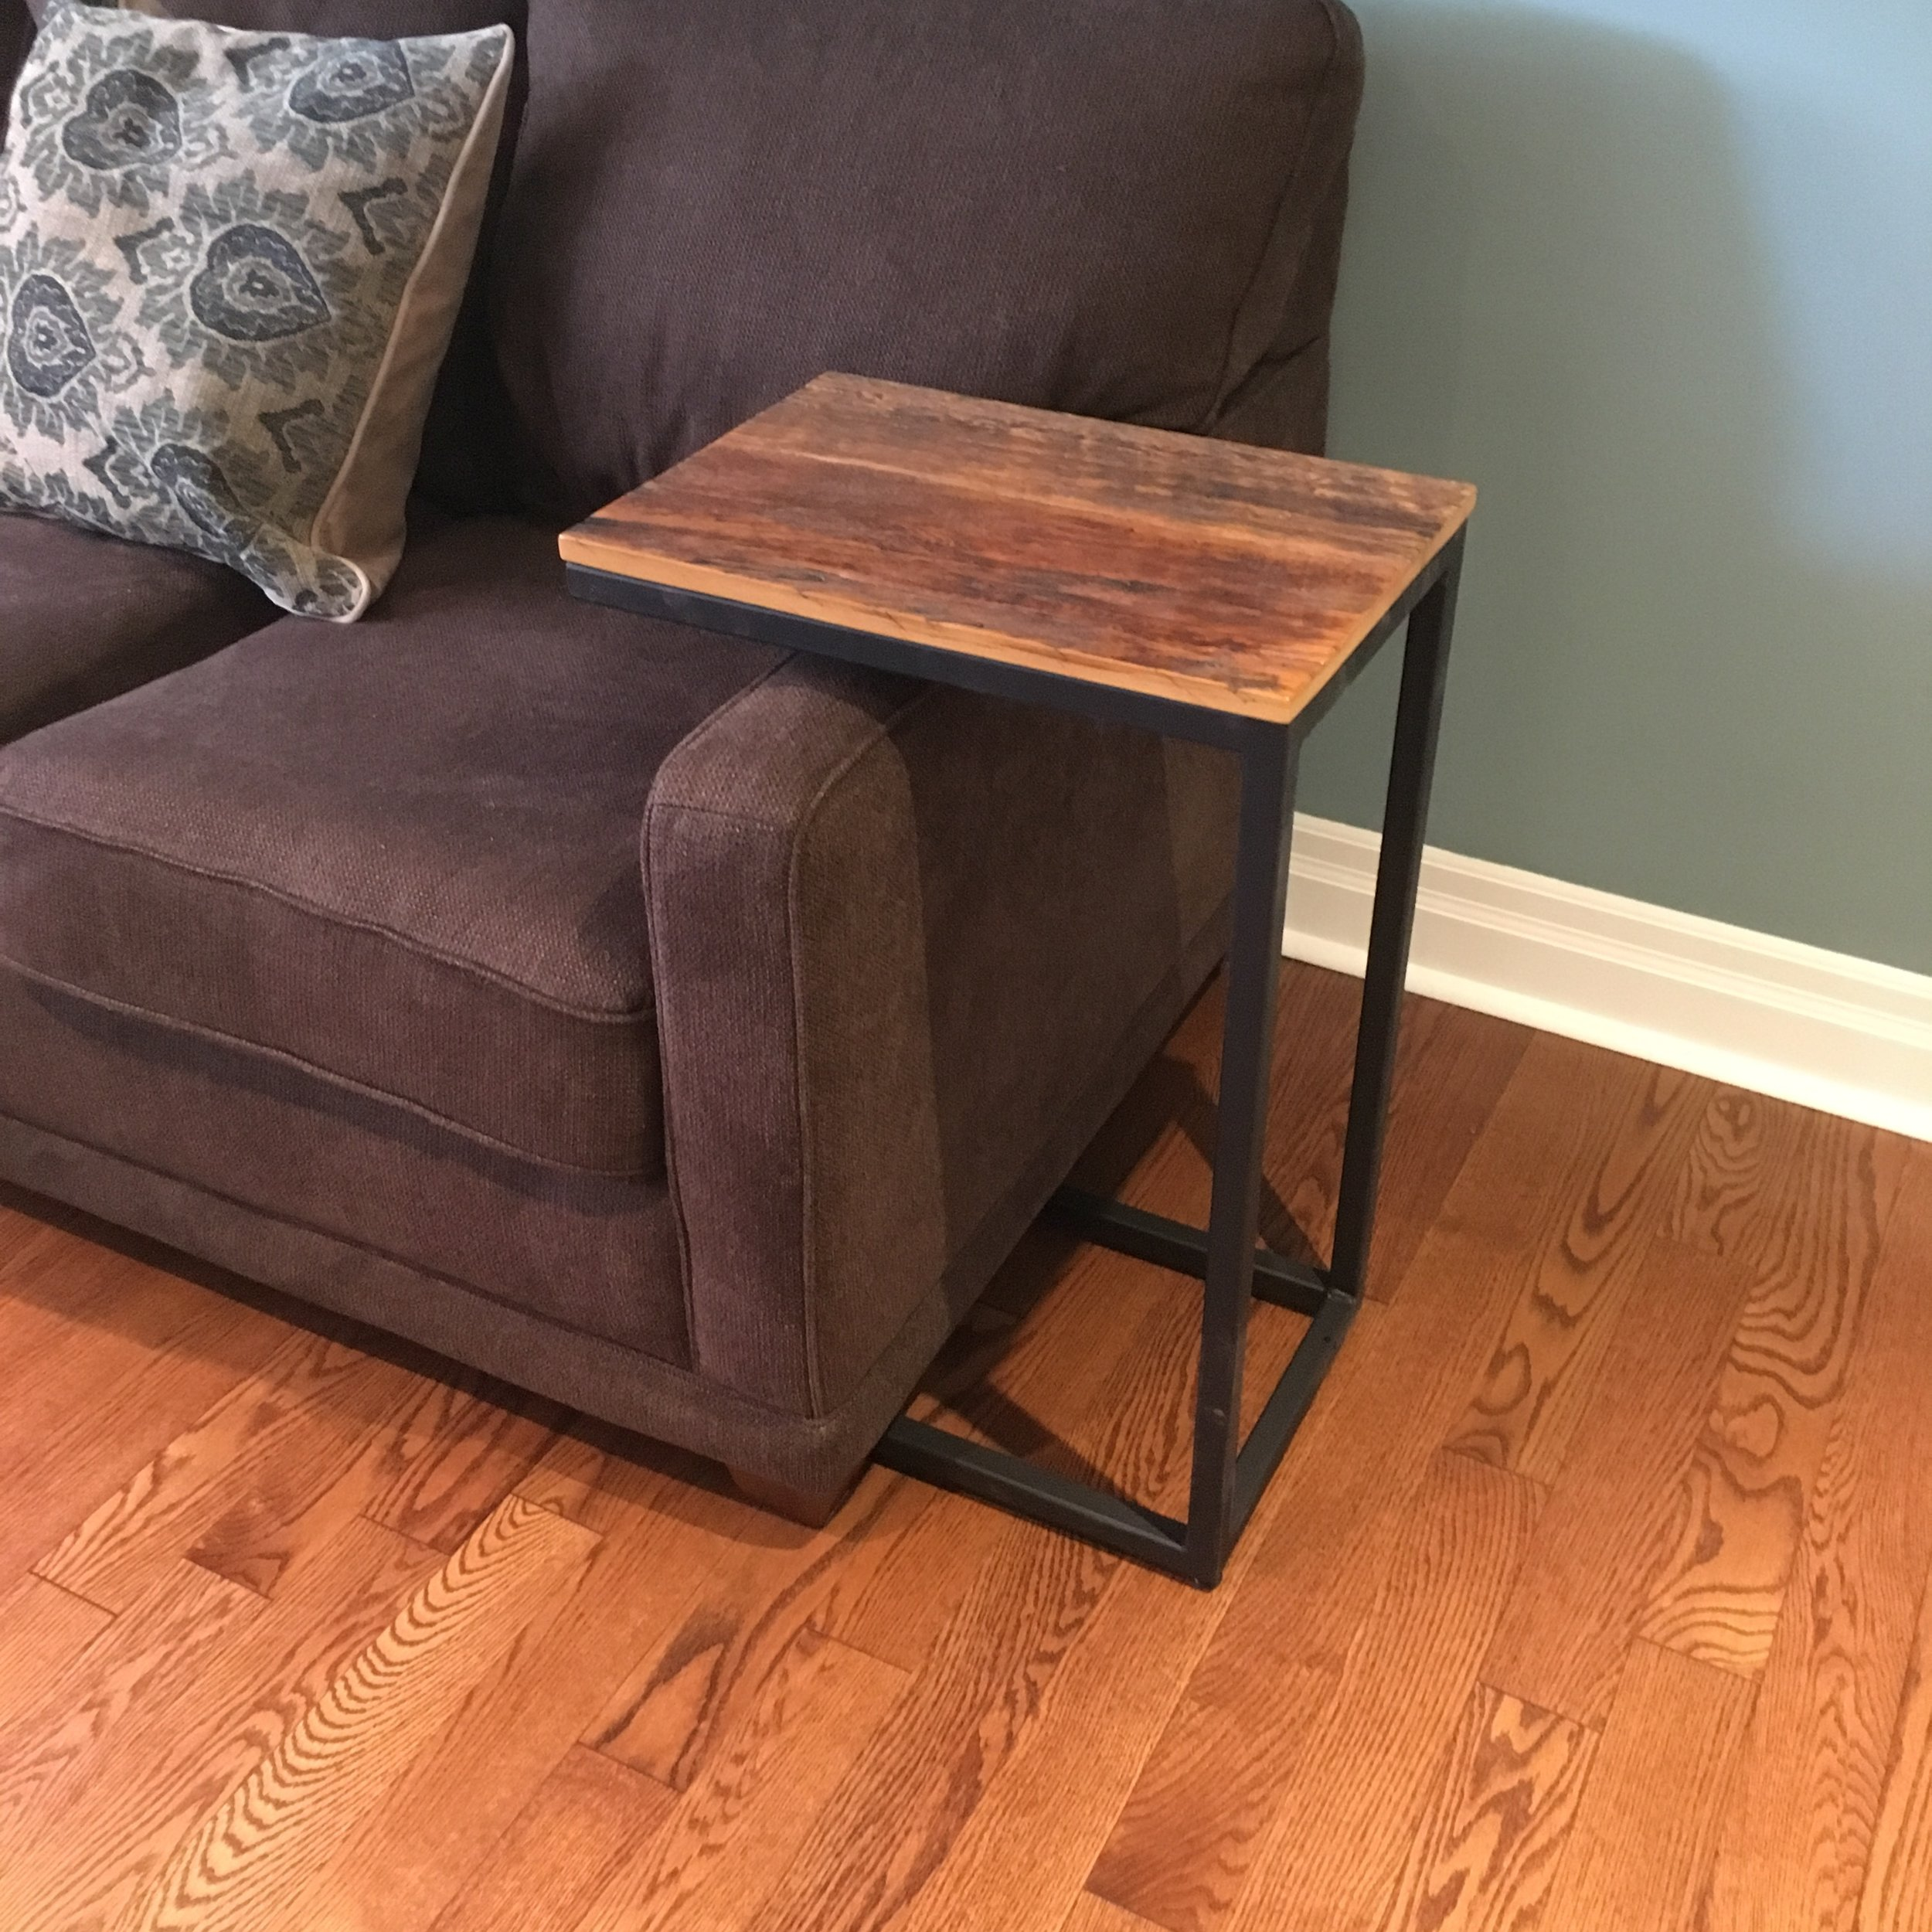 Reclaimed Wood Couch Side Table